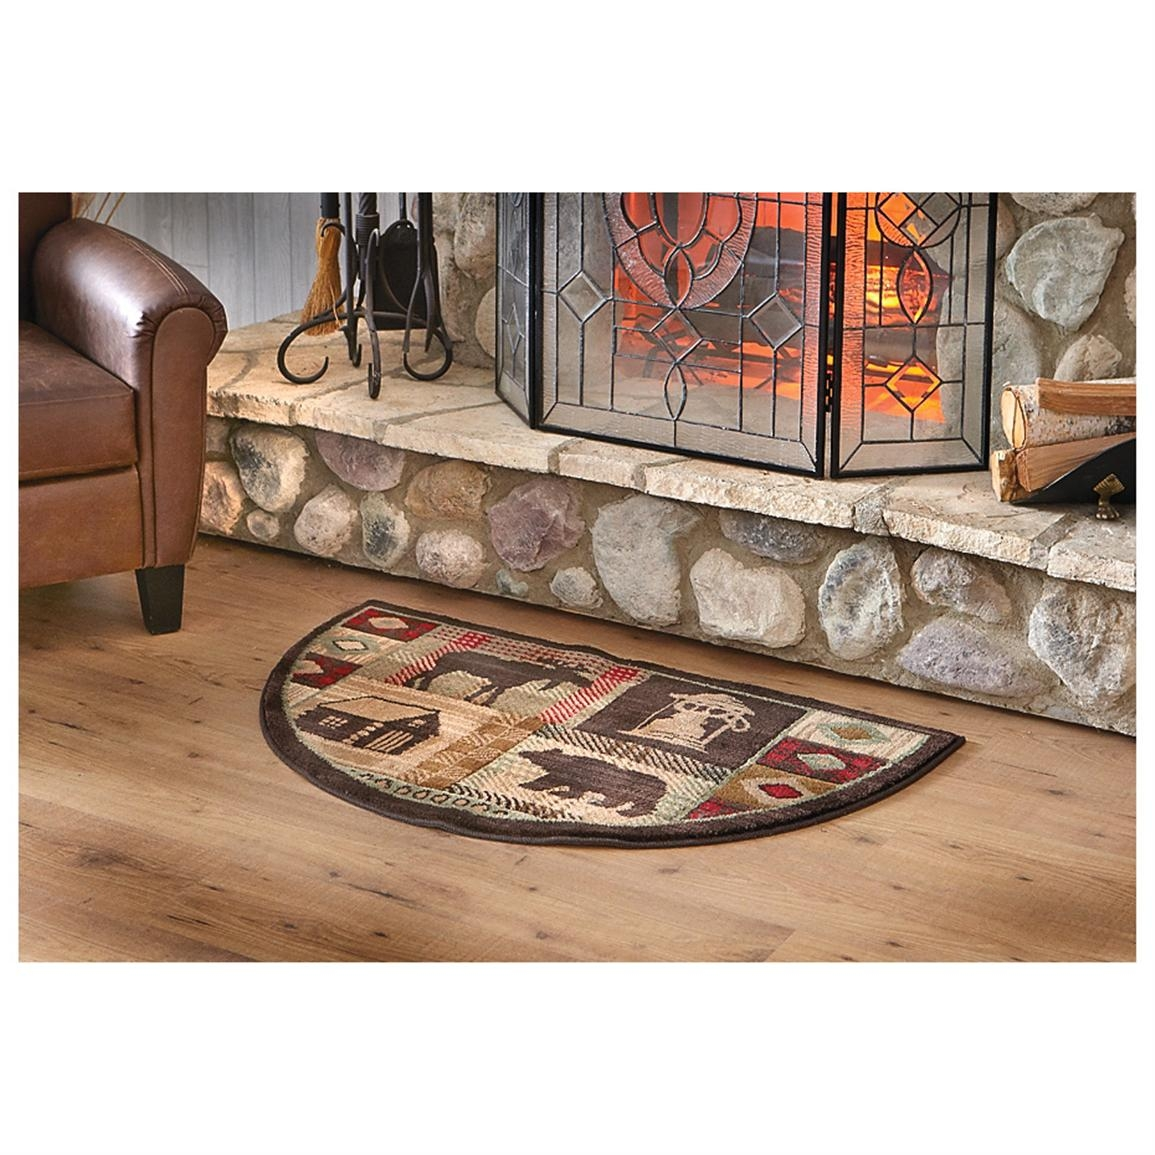 Fireplace Rug Fire Resistant: 15 Best Hearth Rugs